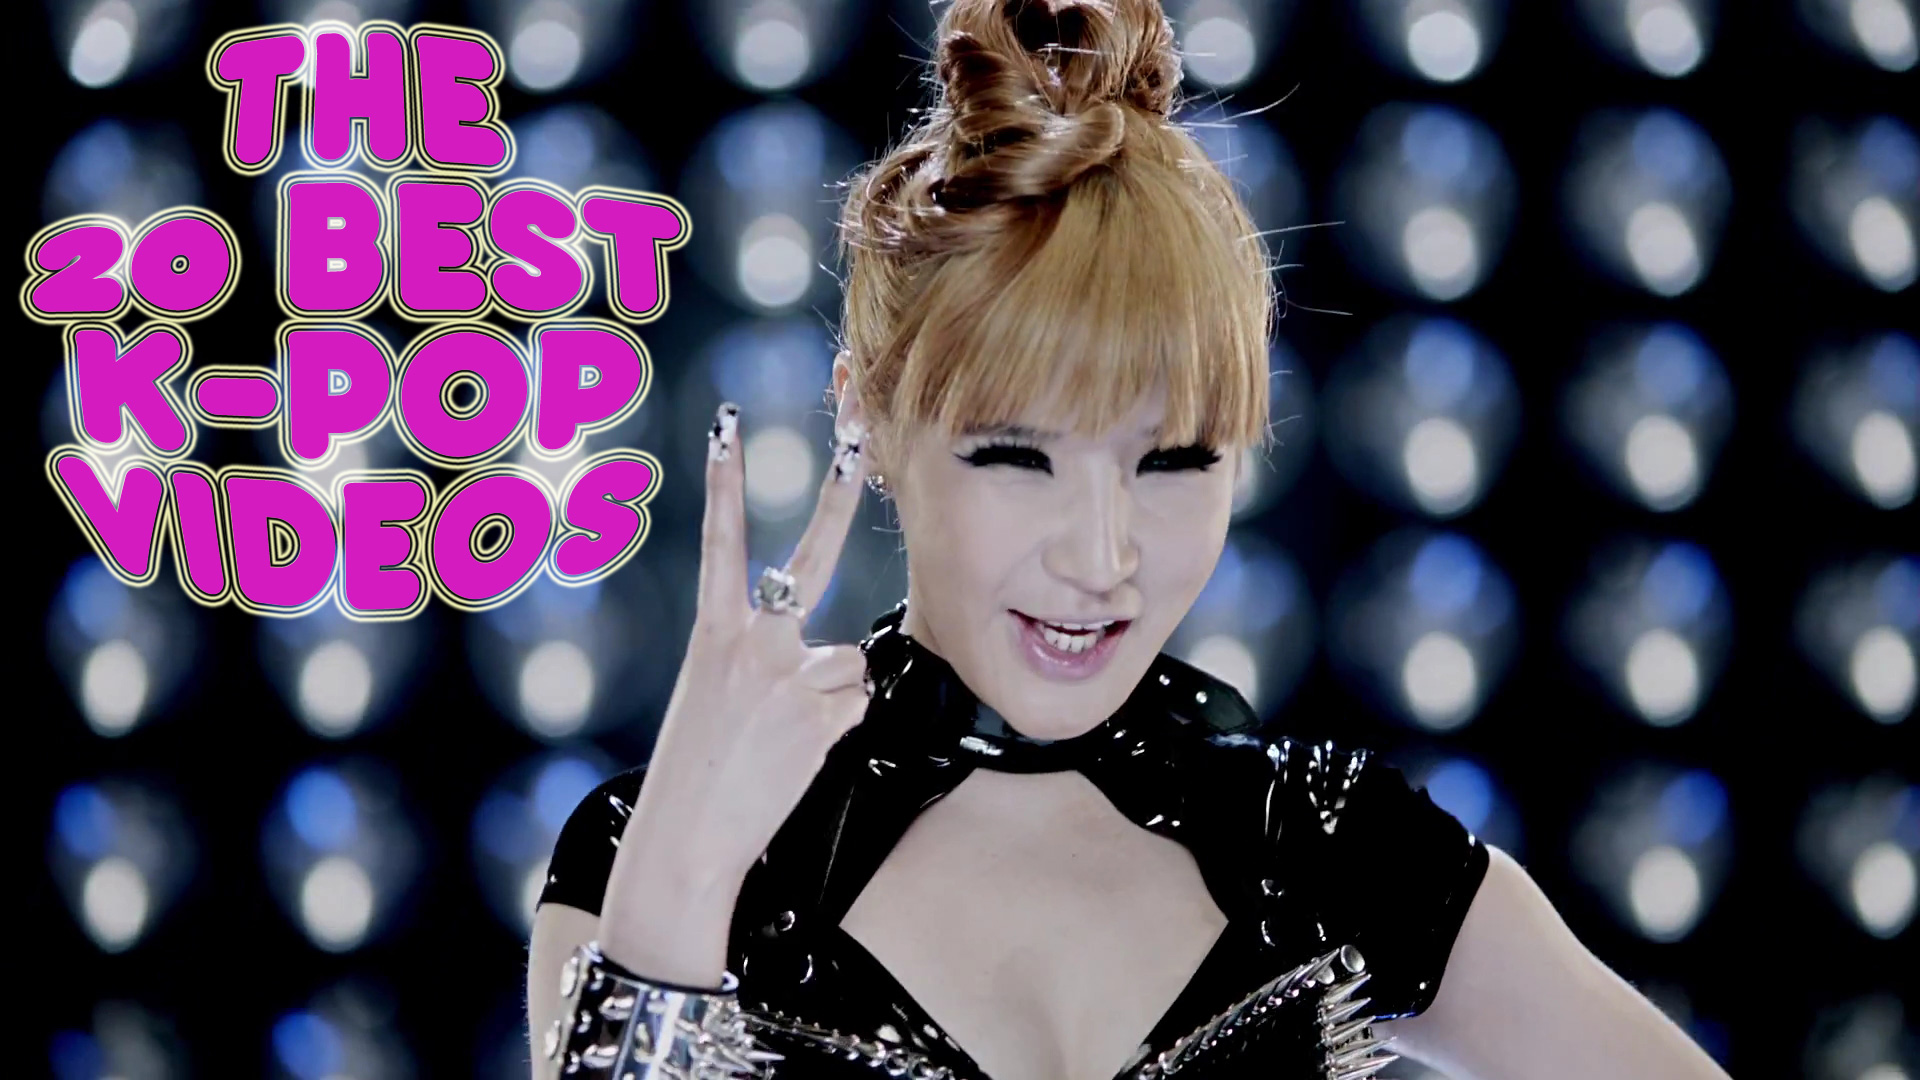 The 20 Best K-Pop Videos - Stereogum